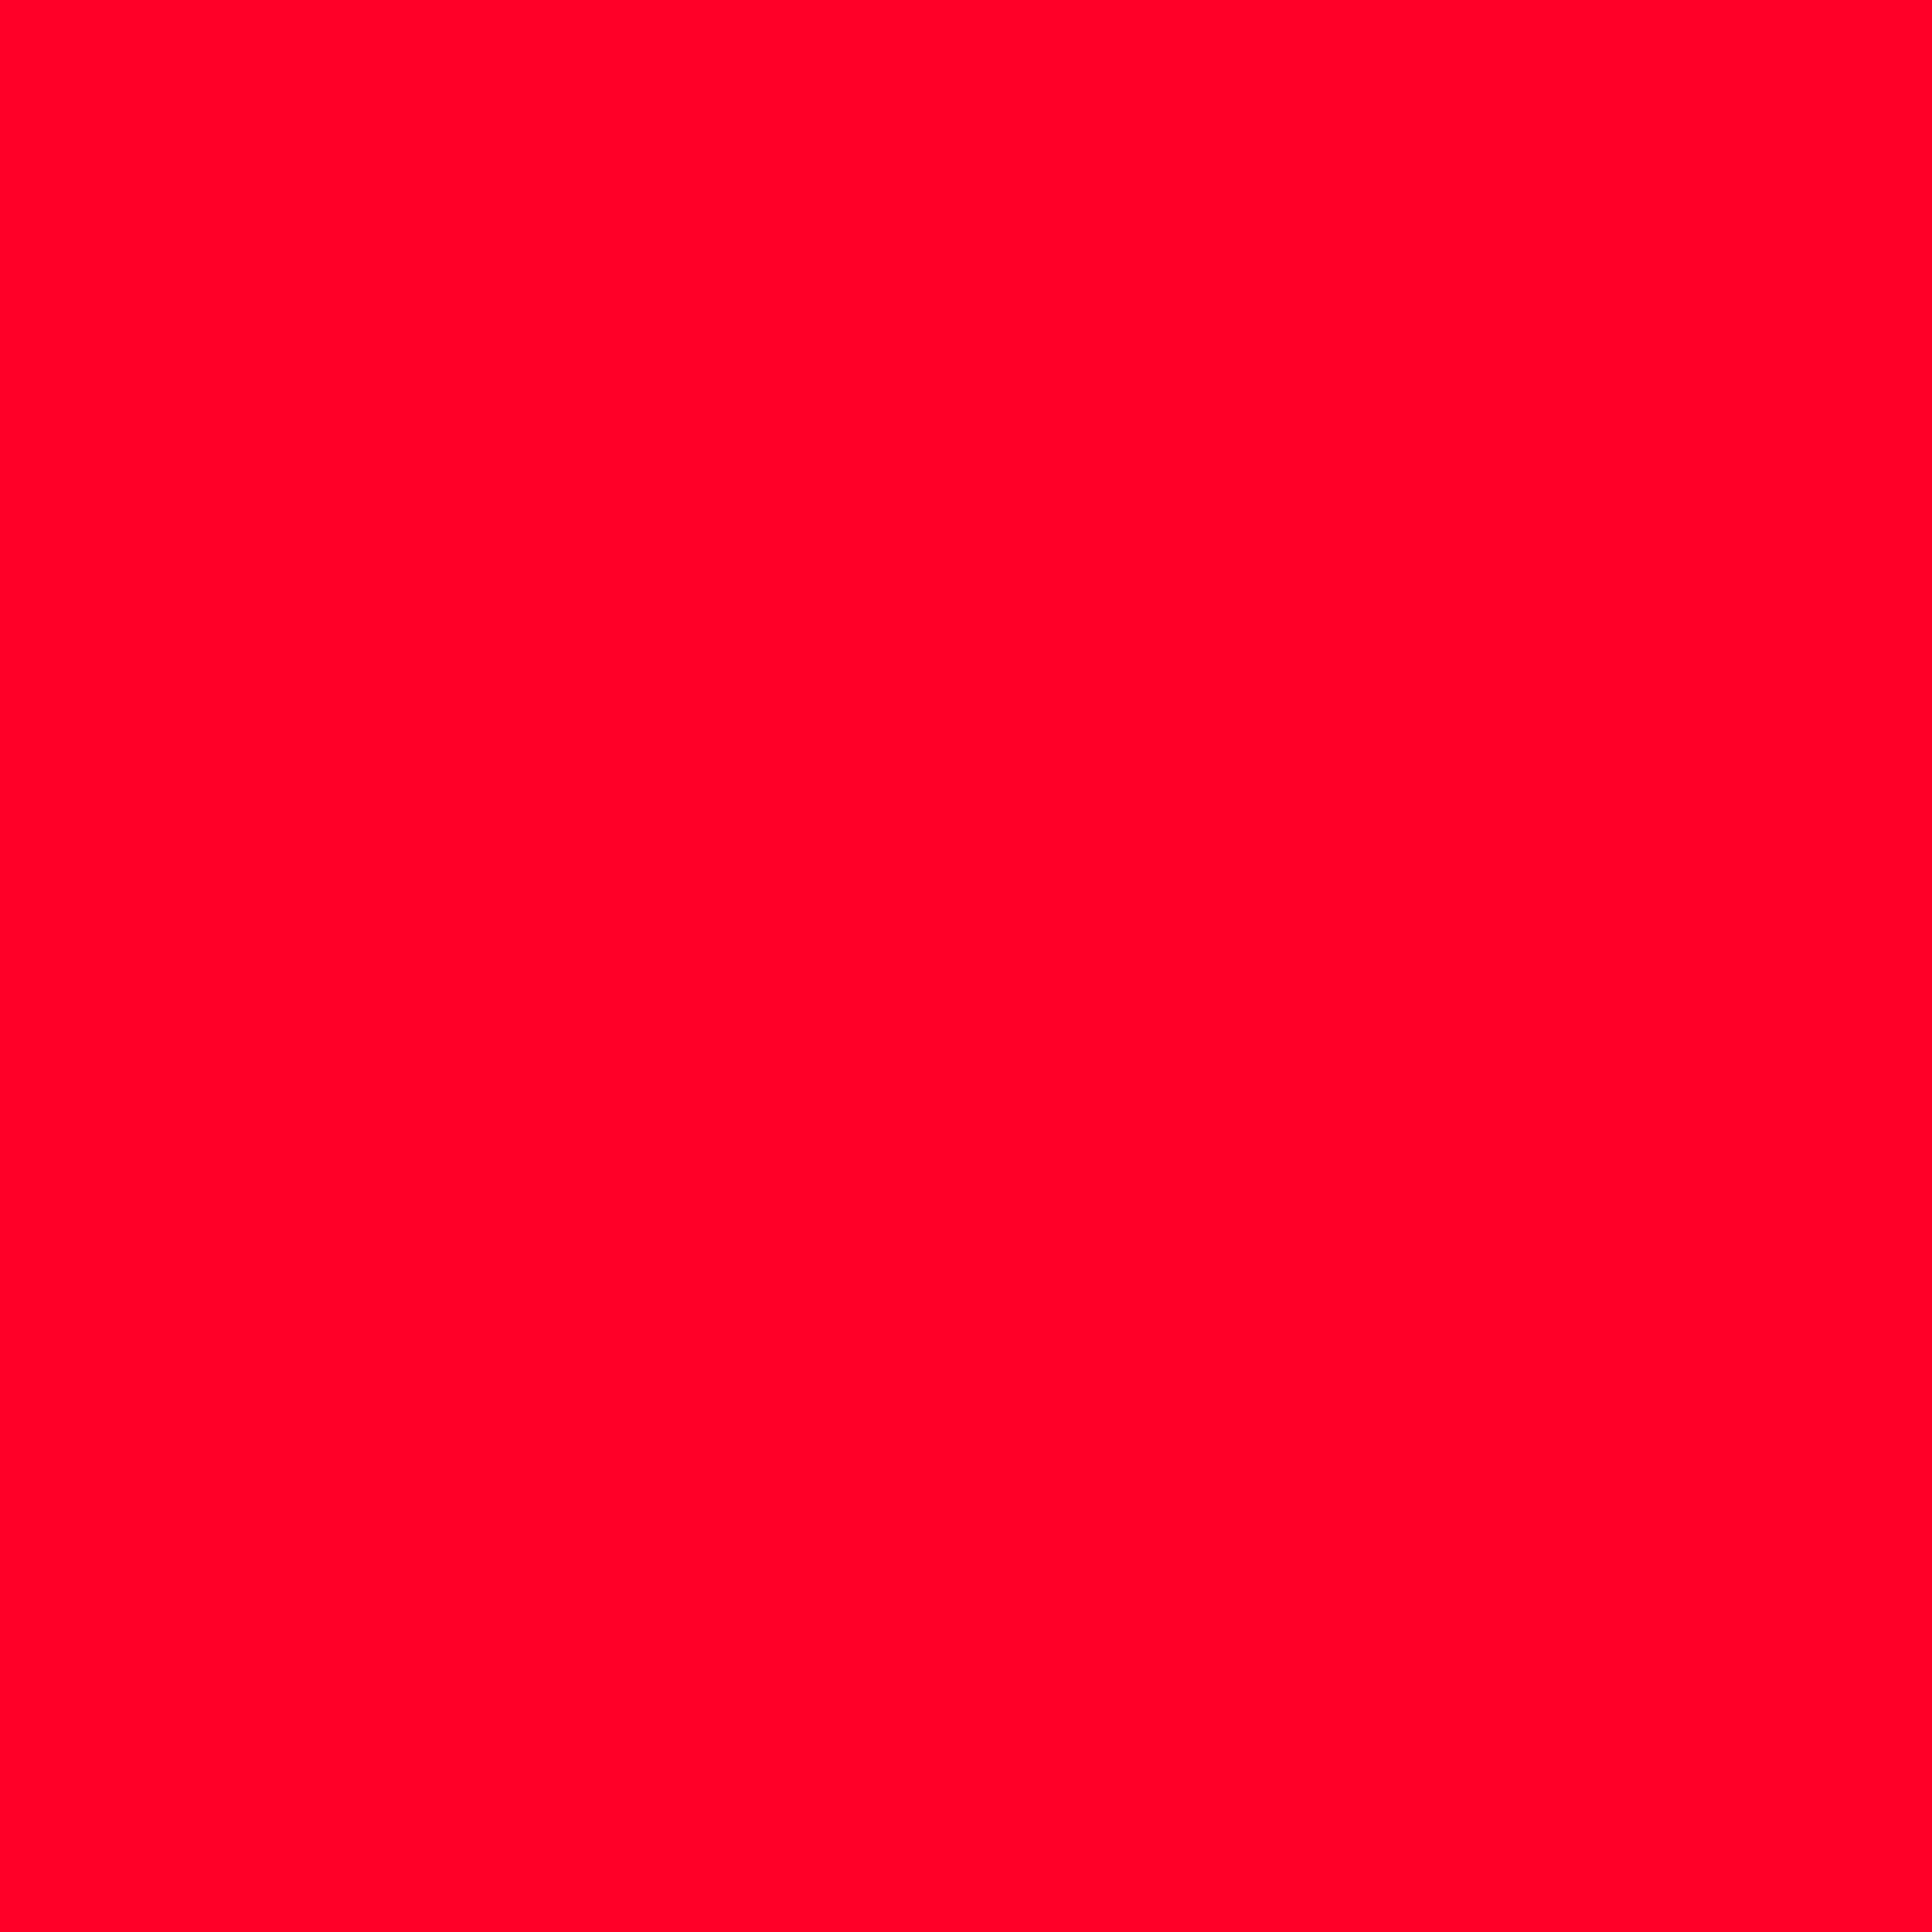 3600x3600 Ruddy Solid Color Background